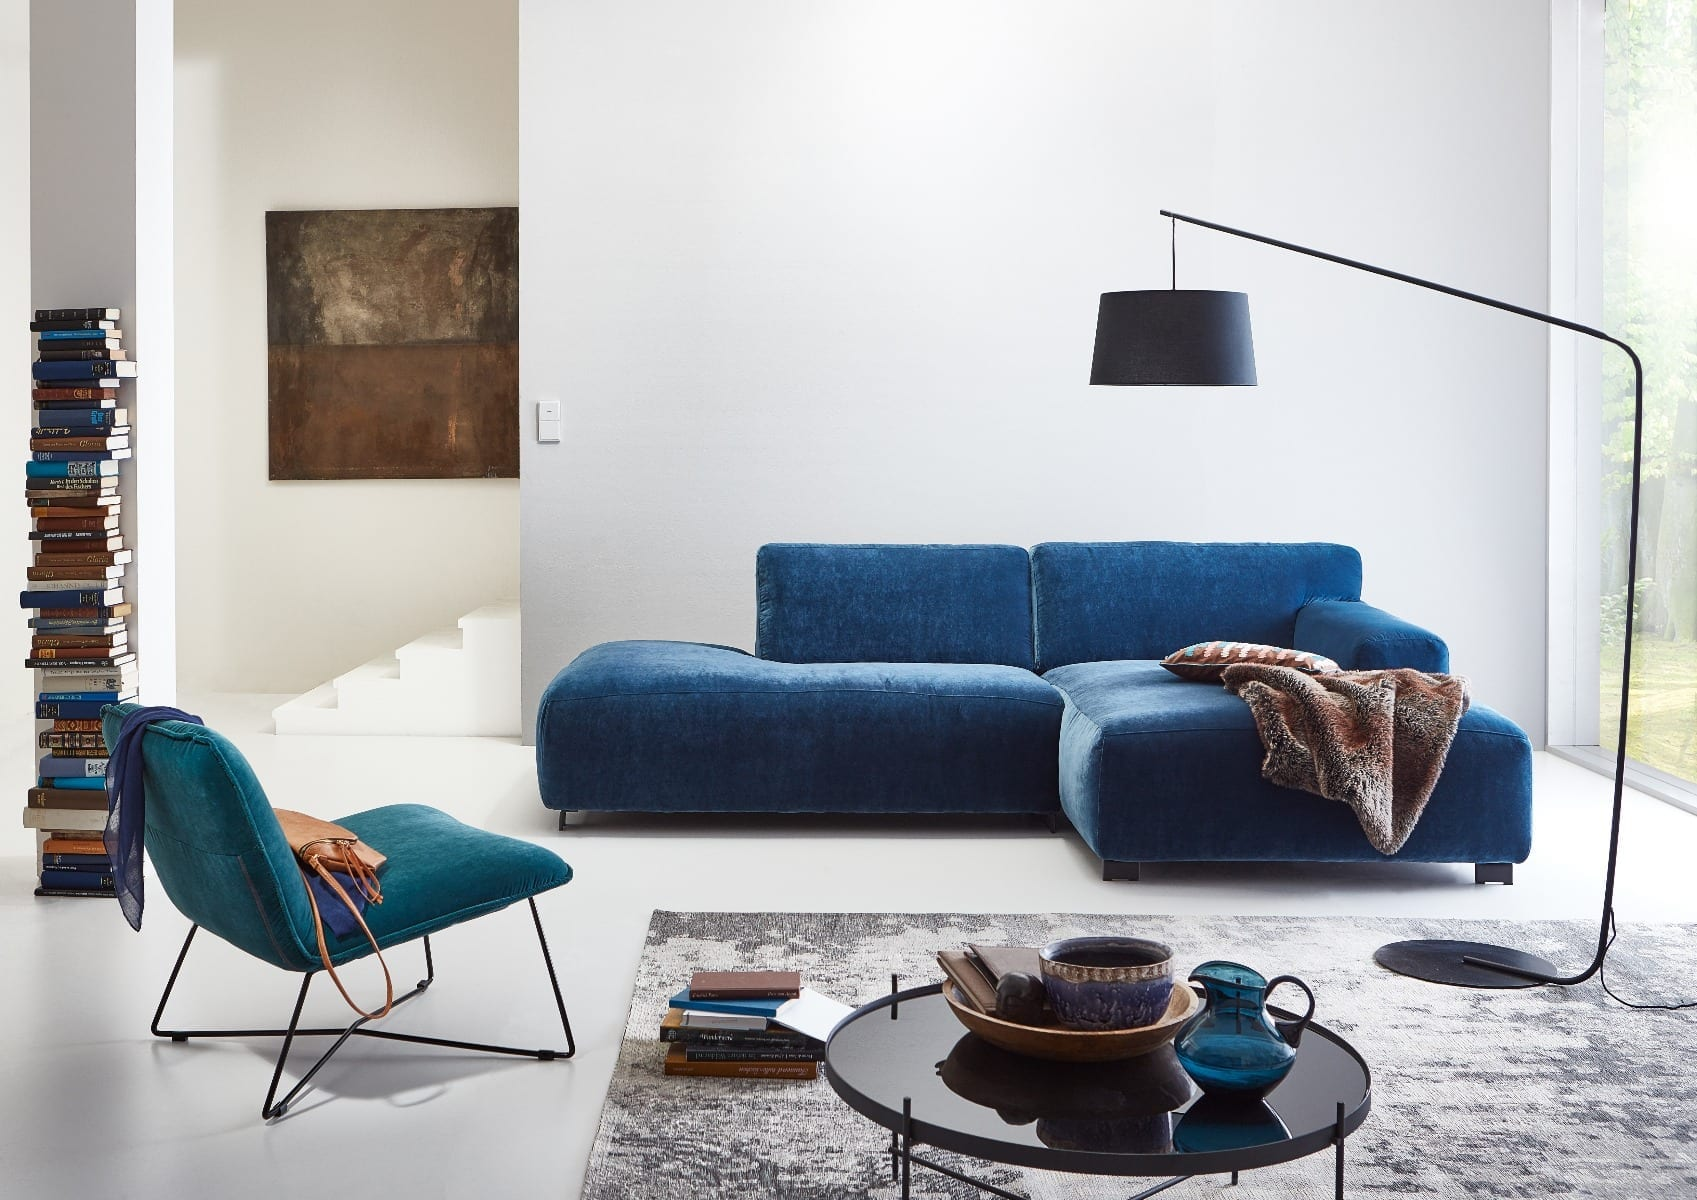 Zeus Modular Sofa With Open End And Chaise Longue